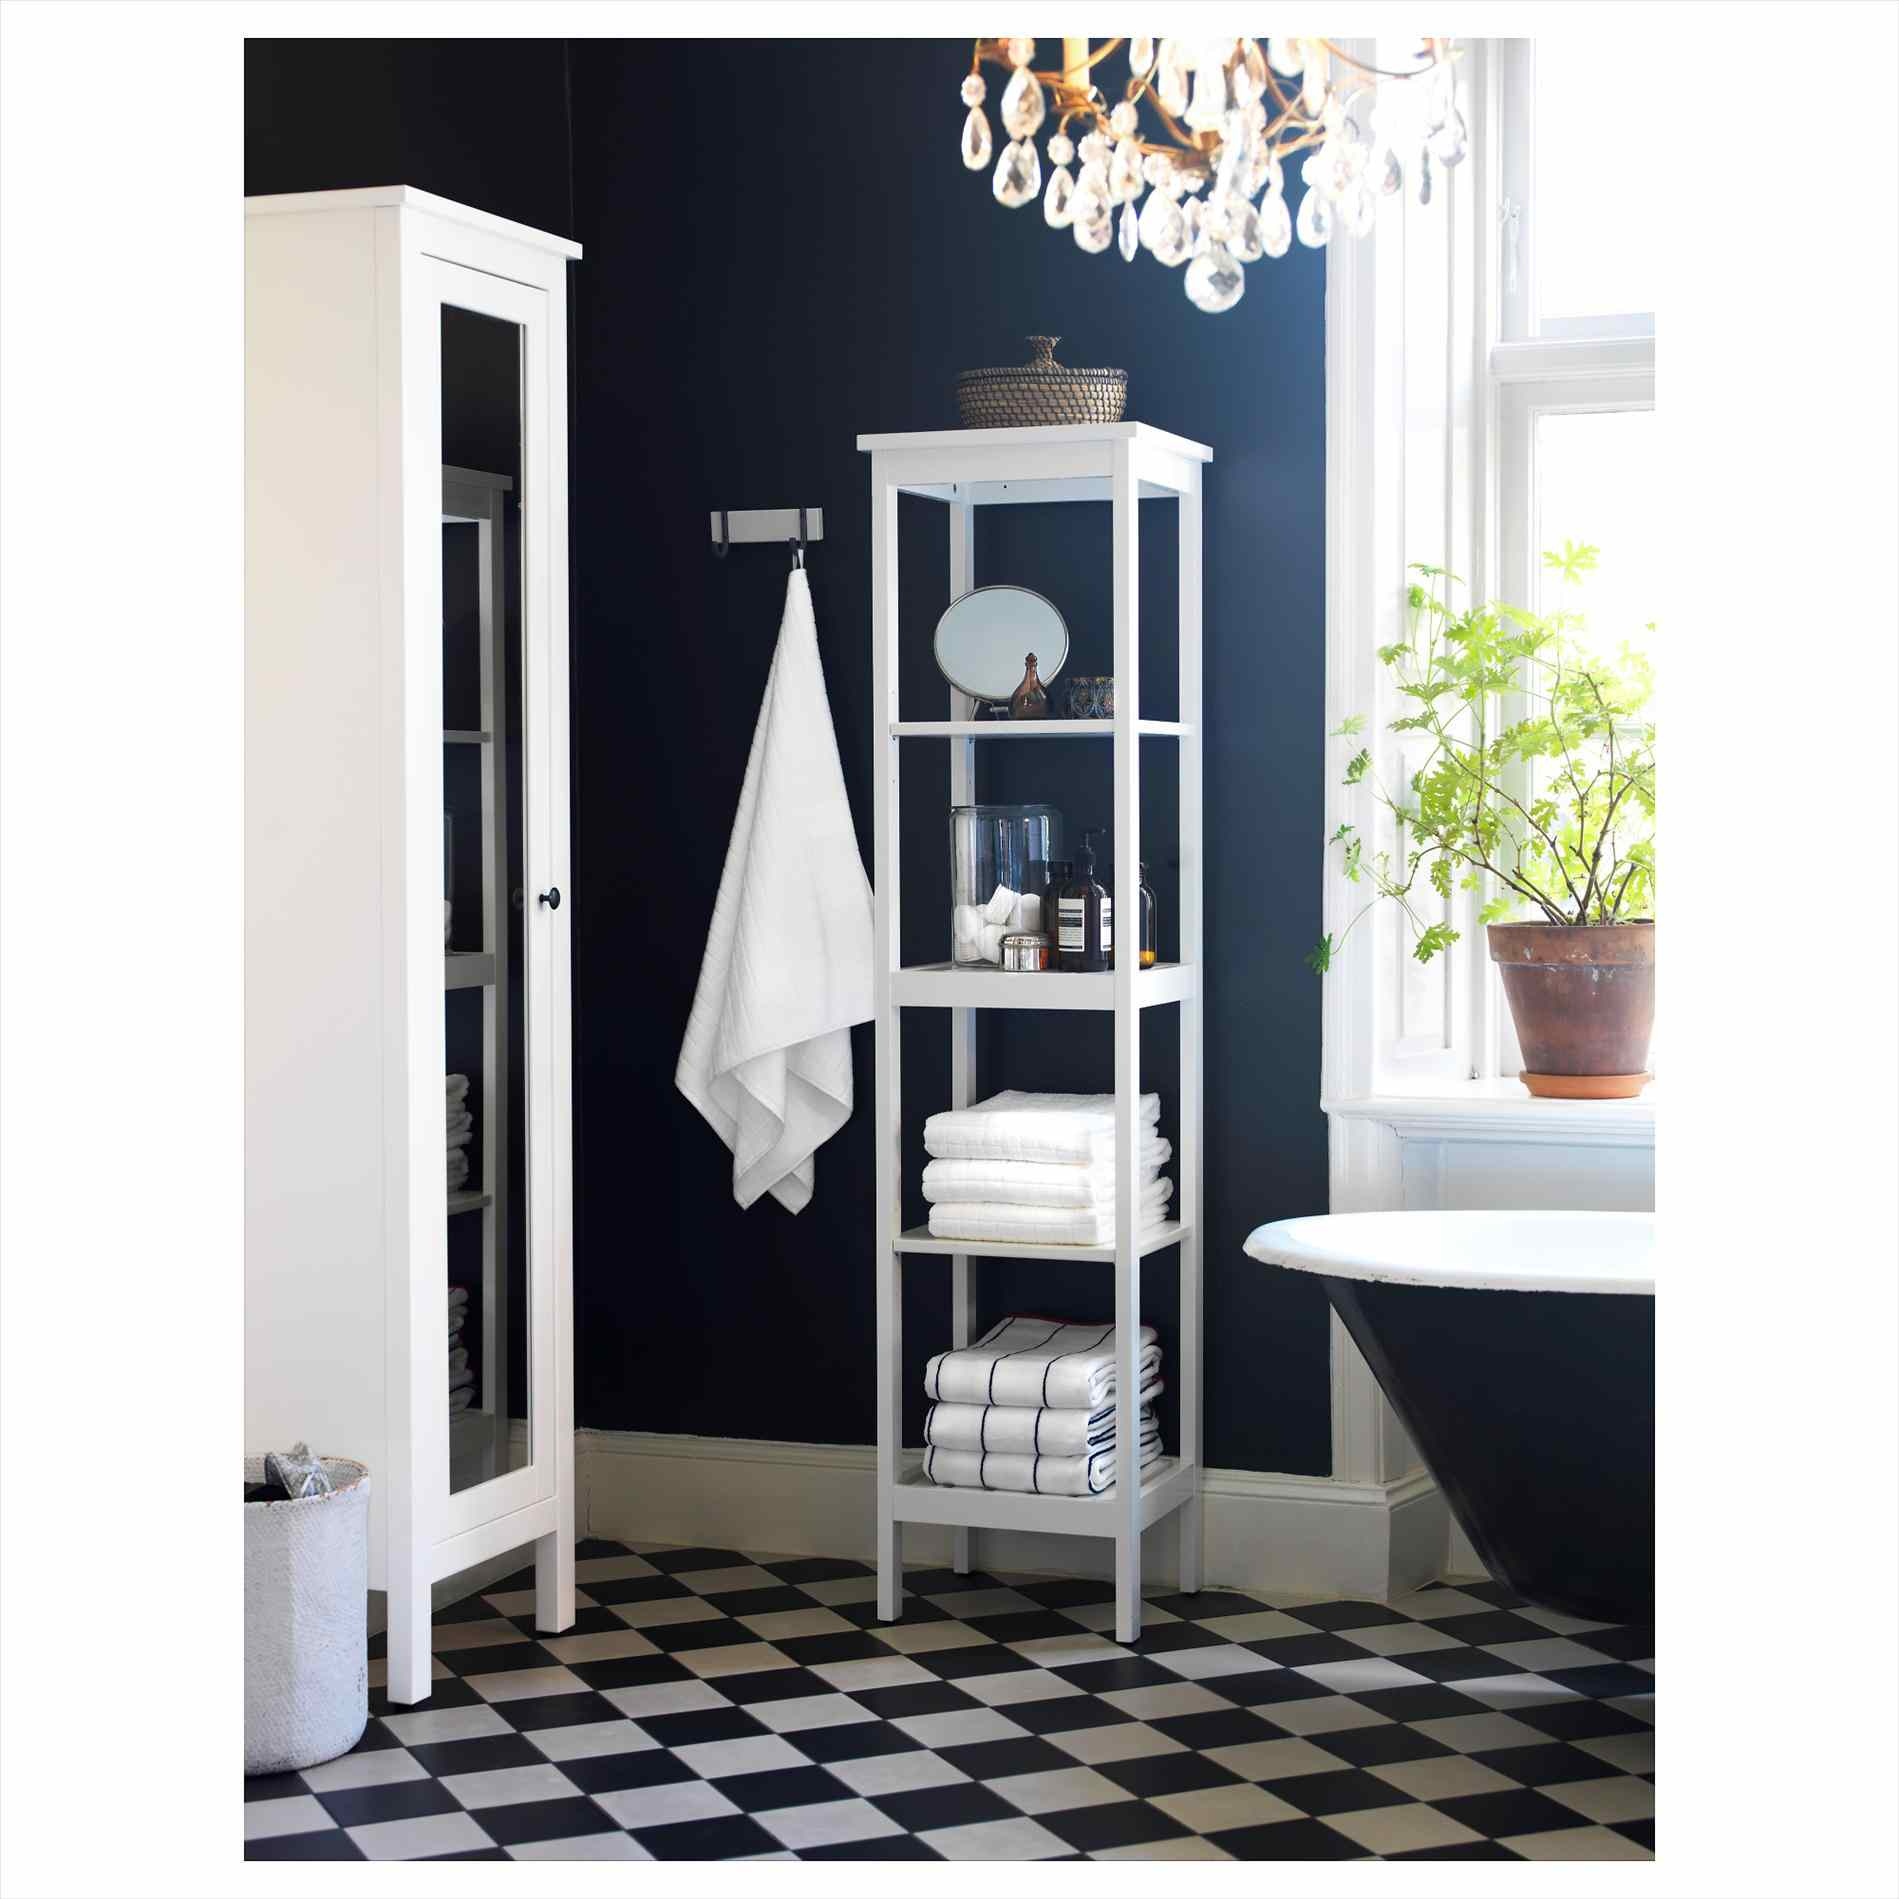 Ikea Vesken 7 Awesome Bathroom Storage Ideas Shop The Look Urban Sales